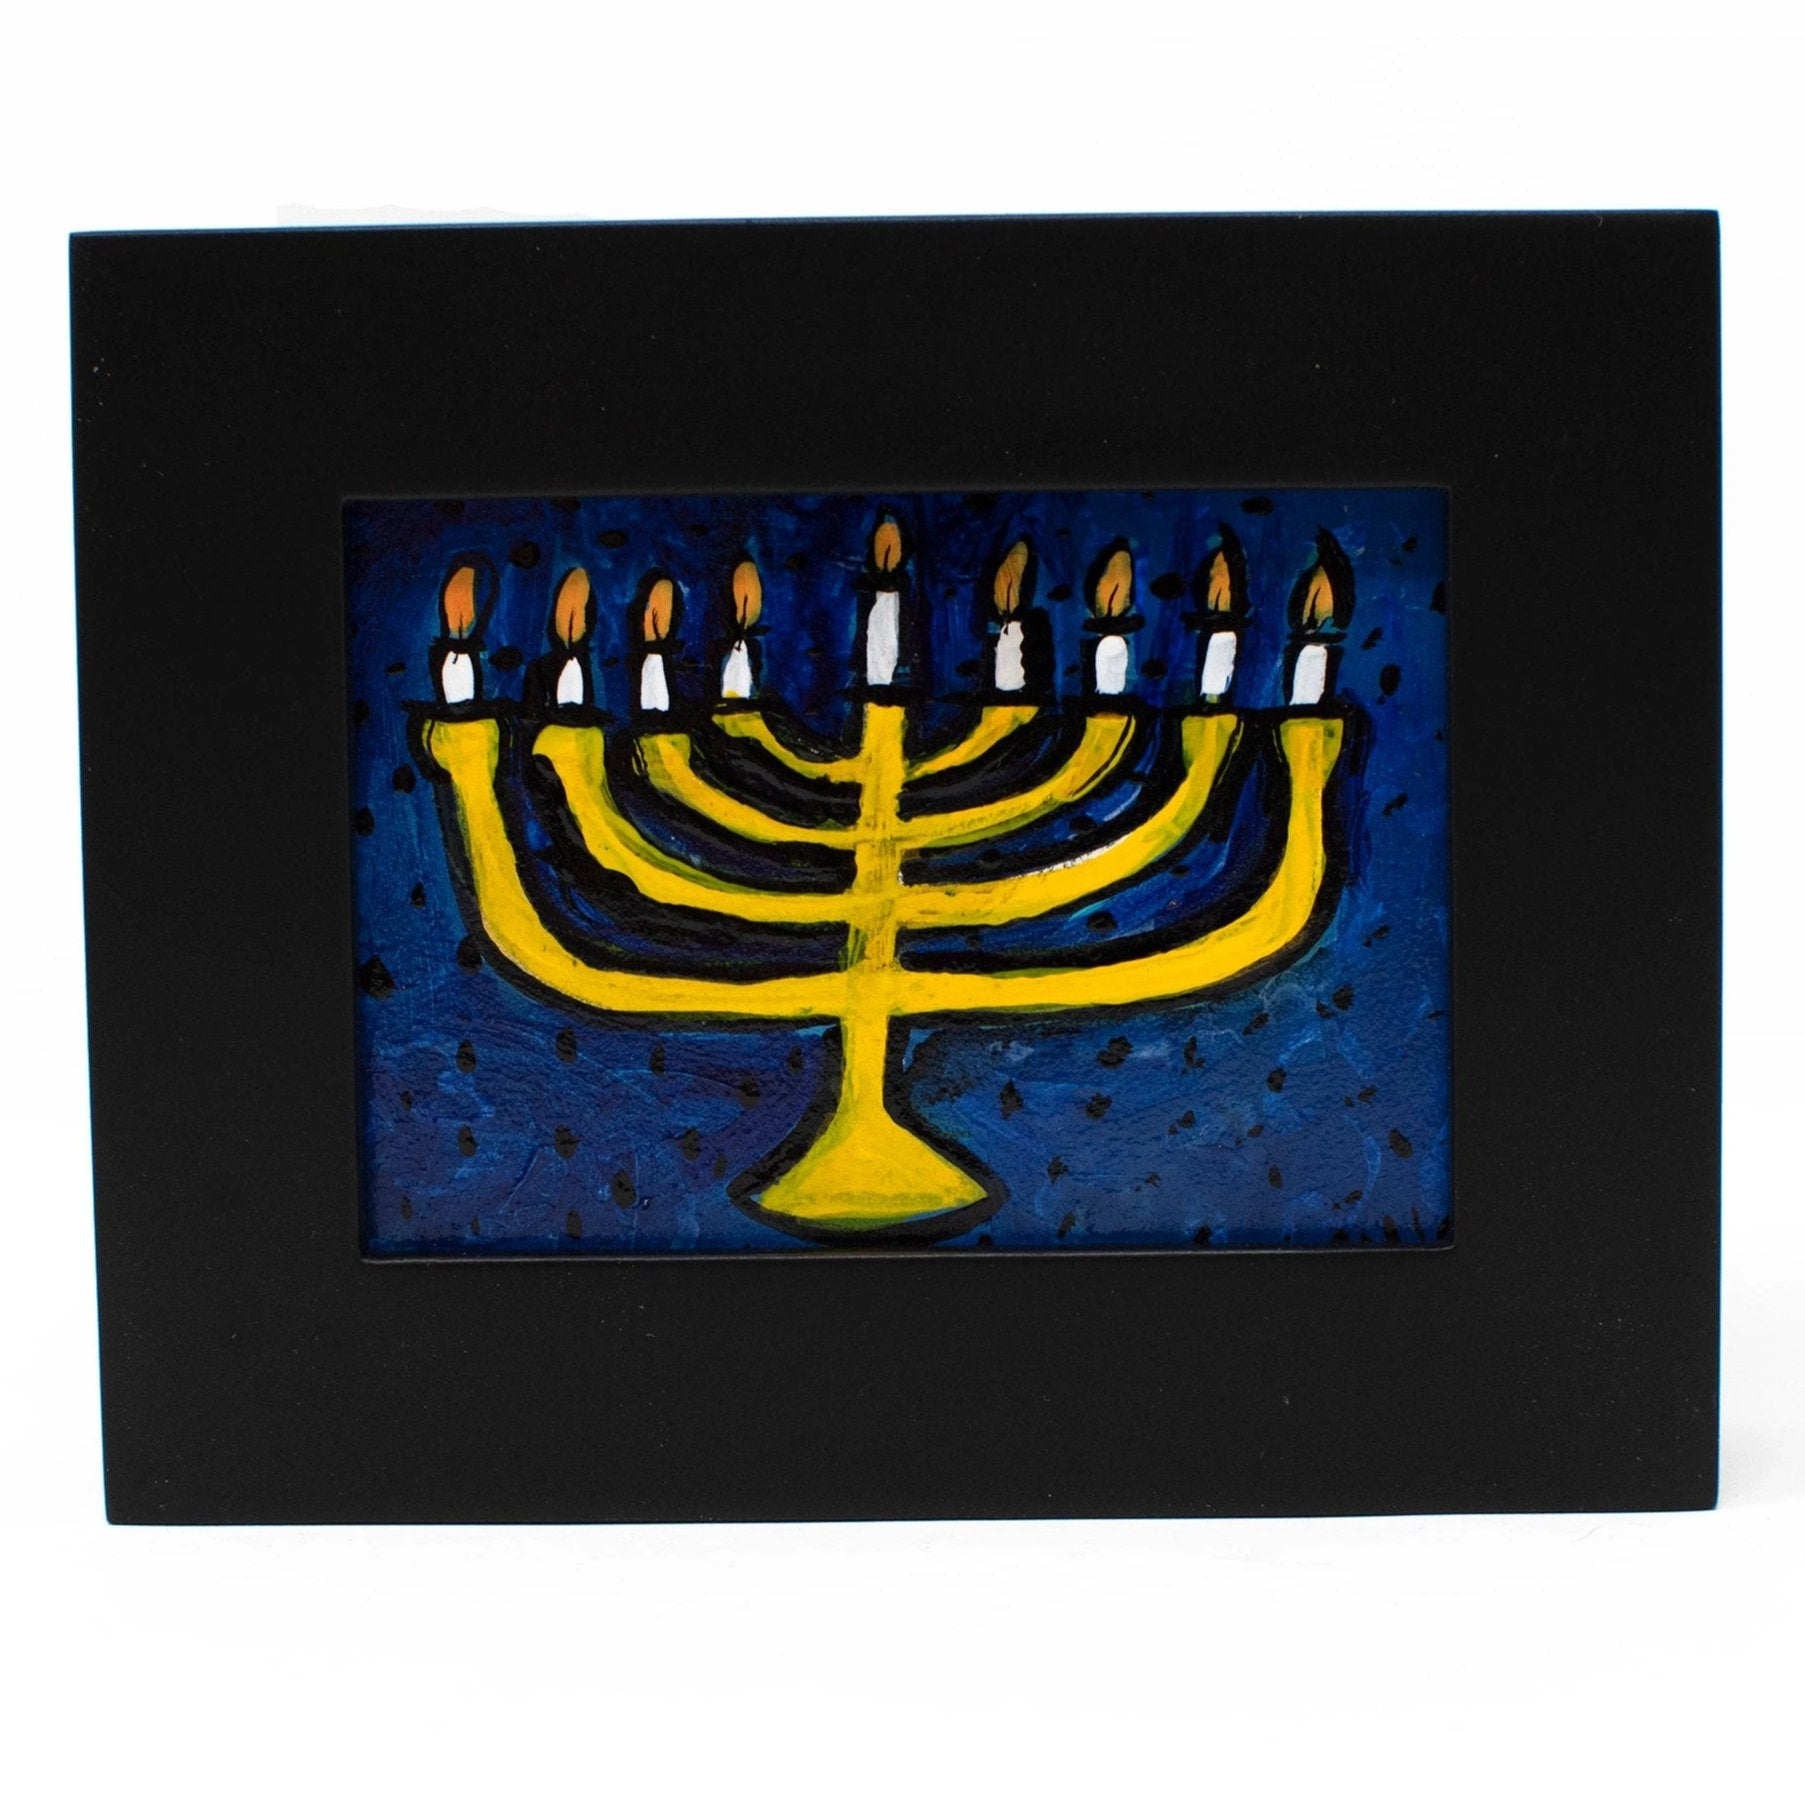 Small Framed Hanukkah Painting of a Menorah - Hanukkah Gift